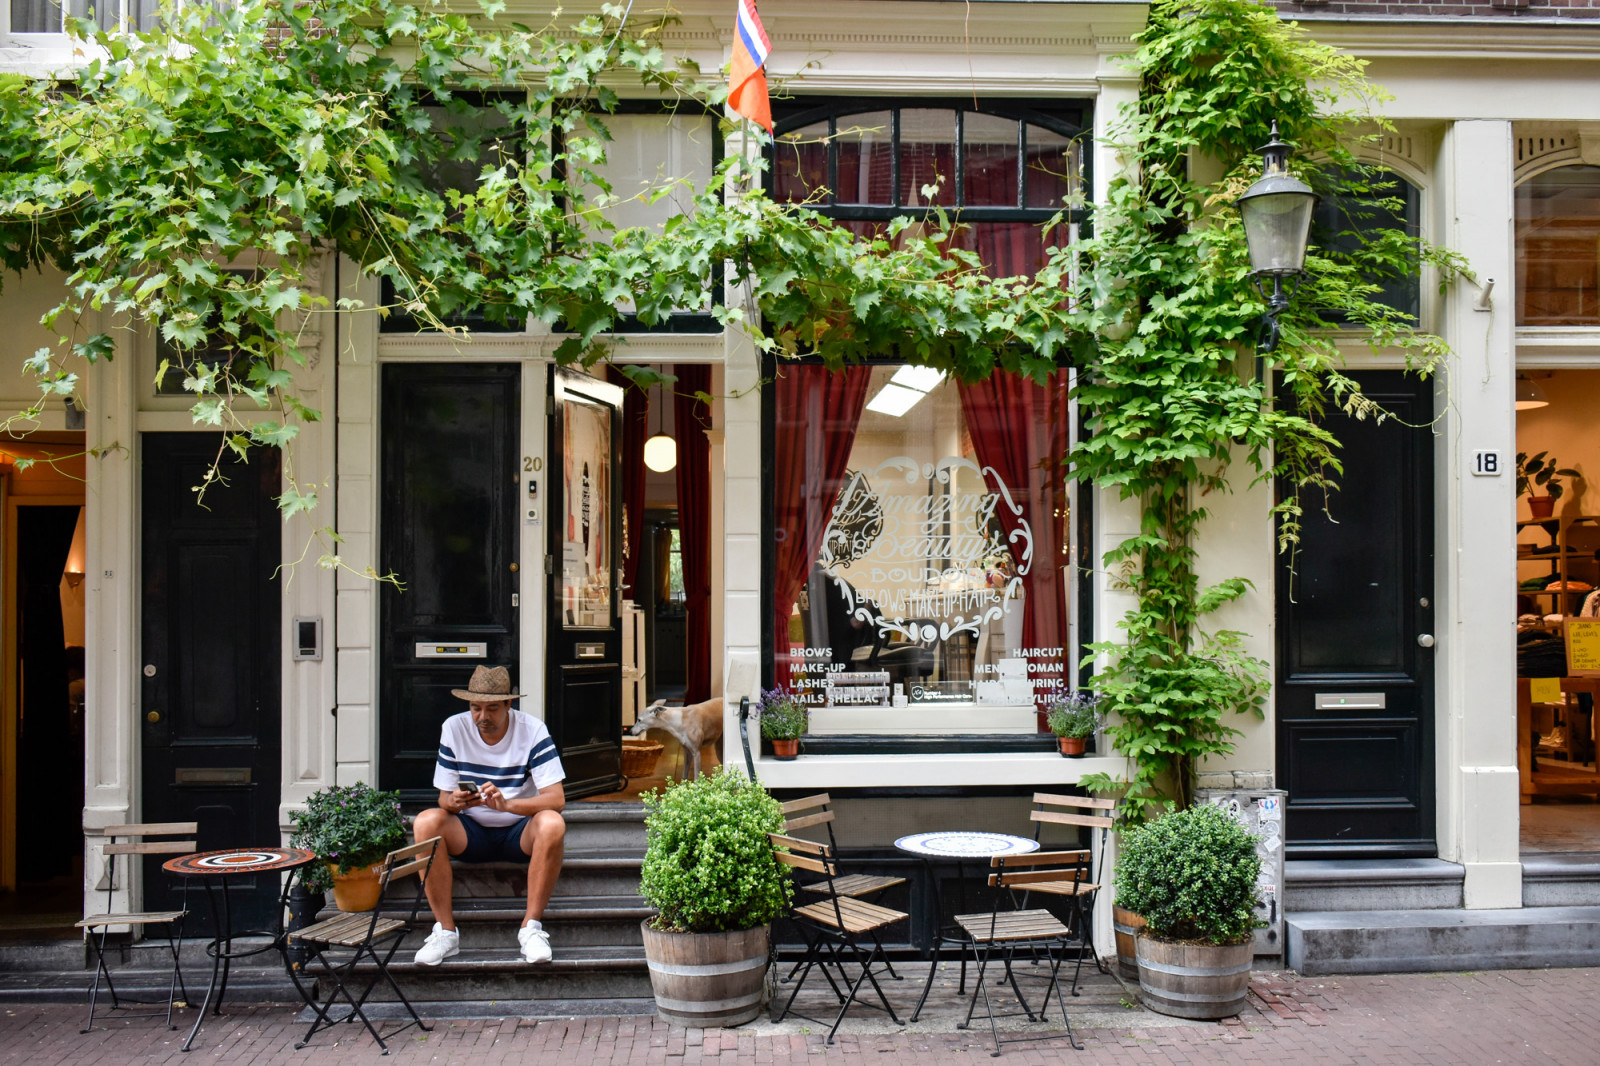 Guy sitting at doorsteps Amsterdam jordaan